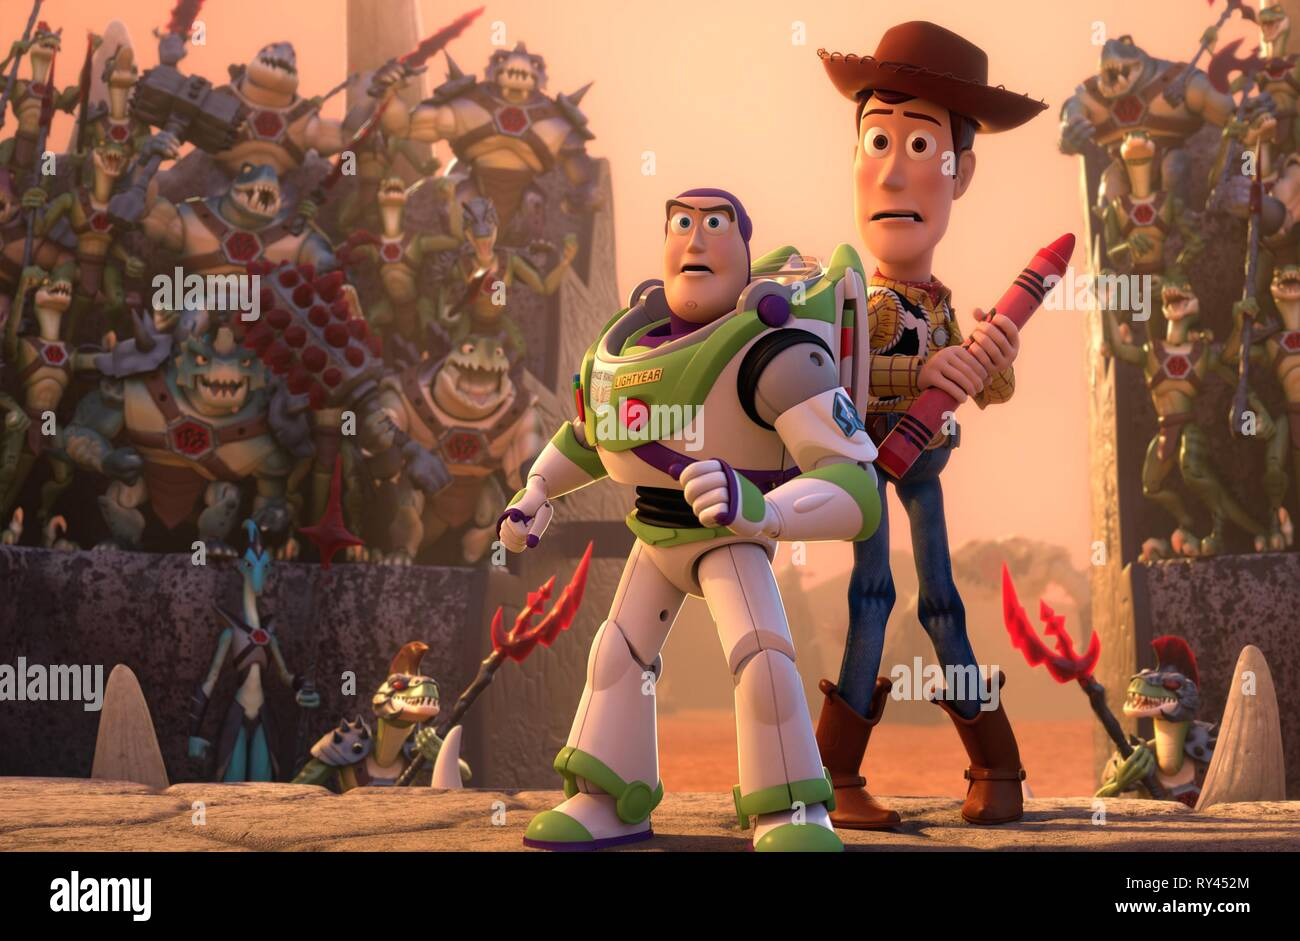 BUZZ LIGHTYEAR,WOODY, TOY STORY THAT TIME FORGOT, 2014 - Stock Image